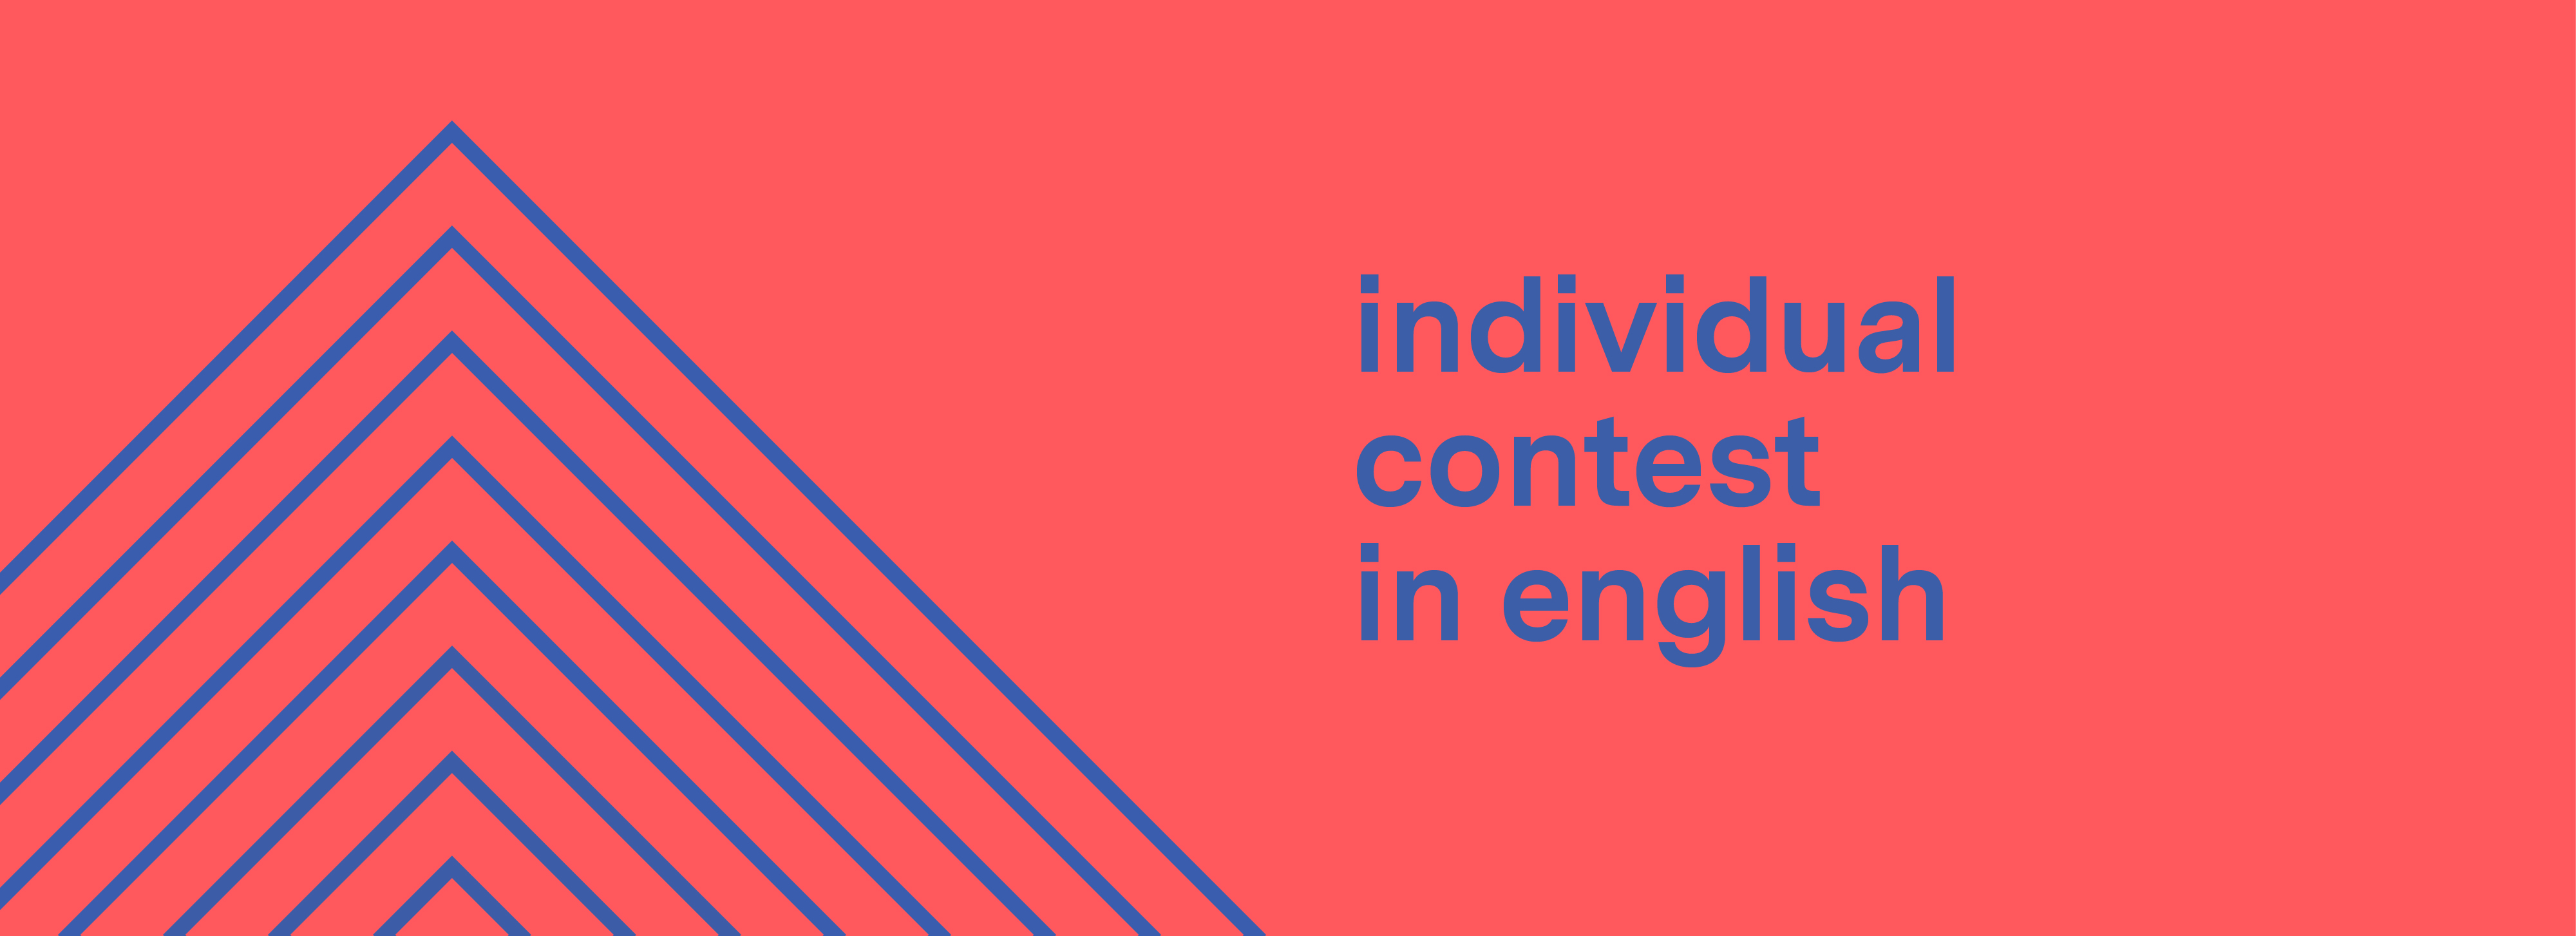 individual-contest-in-english-large